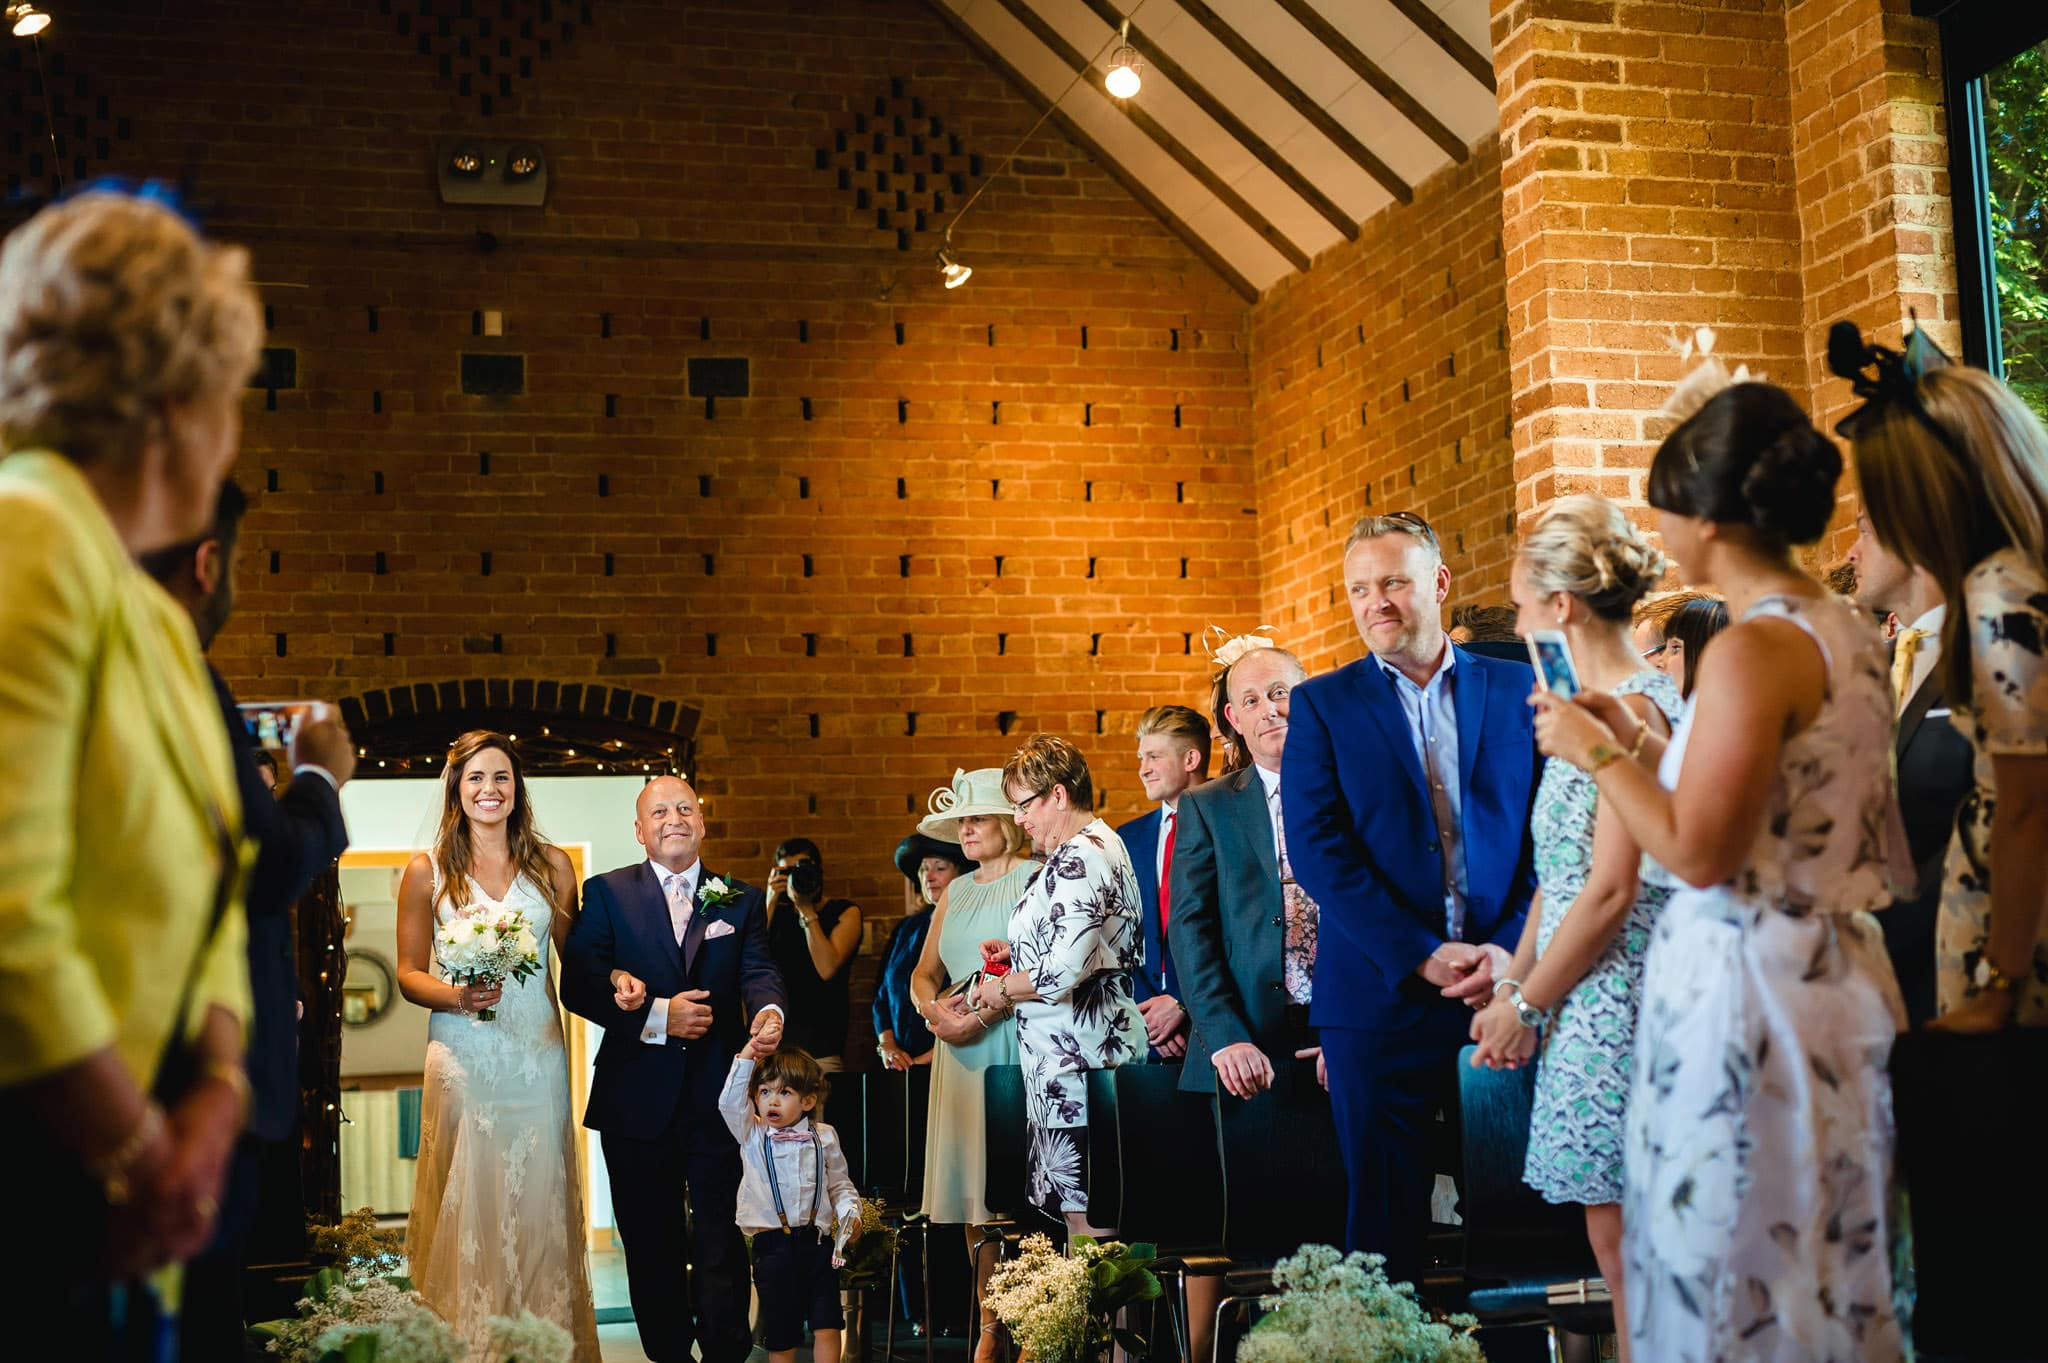 wedding at redhouse barn 70 - Wedding at Redhouse Barn in Stoke Prior, Worcestershire